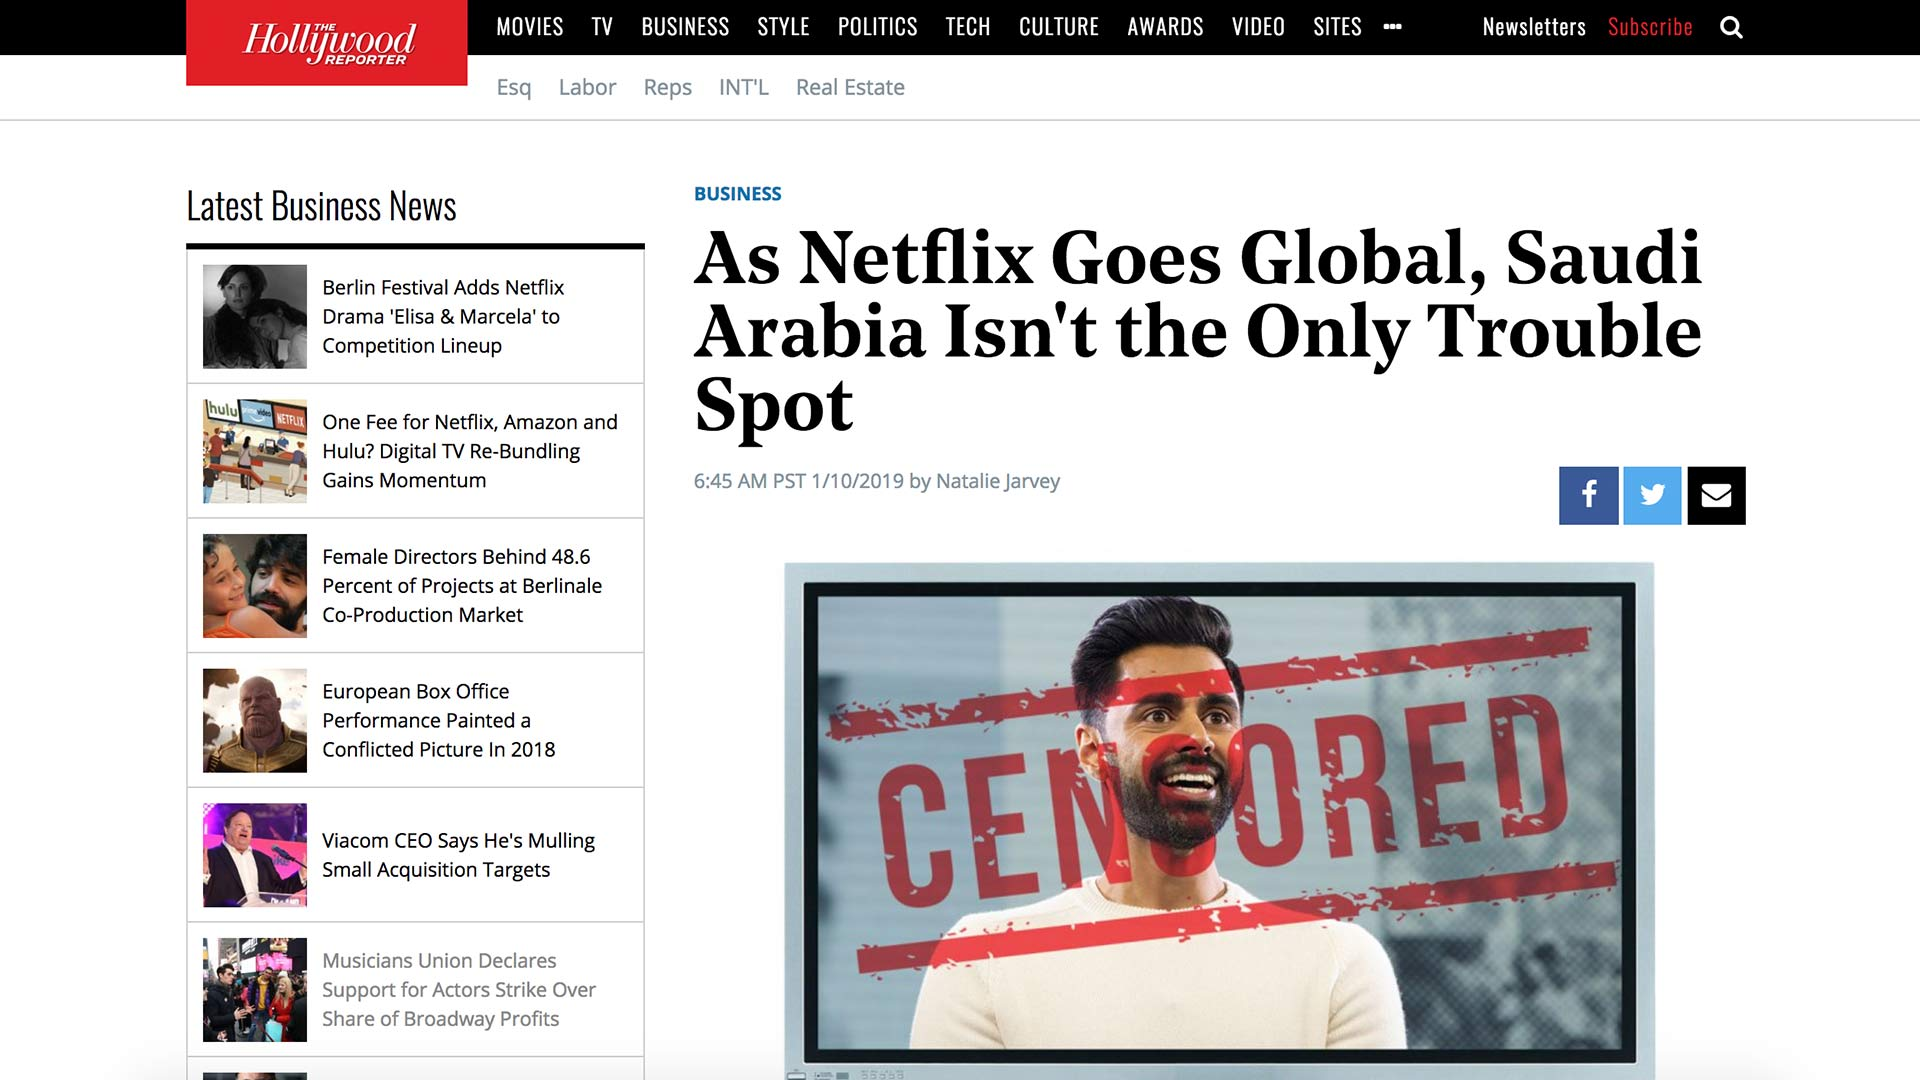 Fairness Rocks News As Netflix Goes Global, Saudi Arabia Isn't the Only Trouble Spot